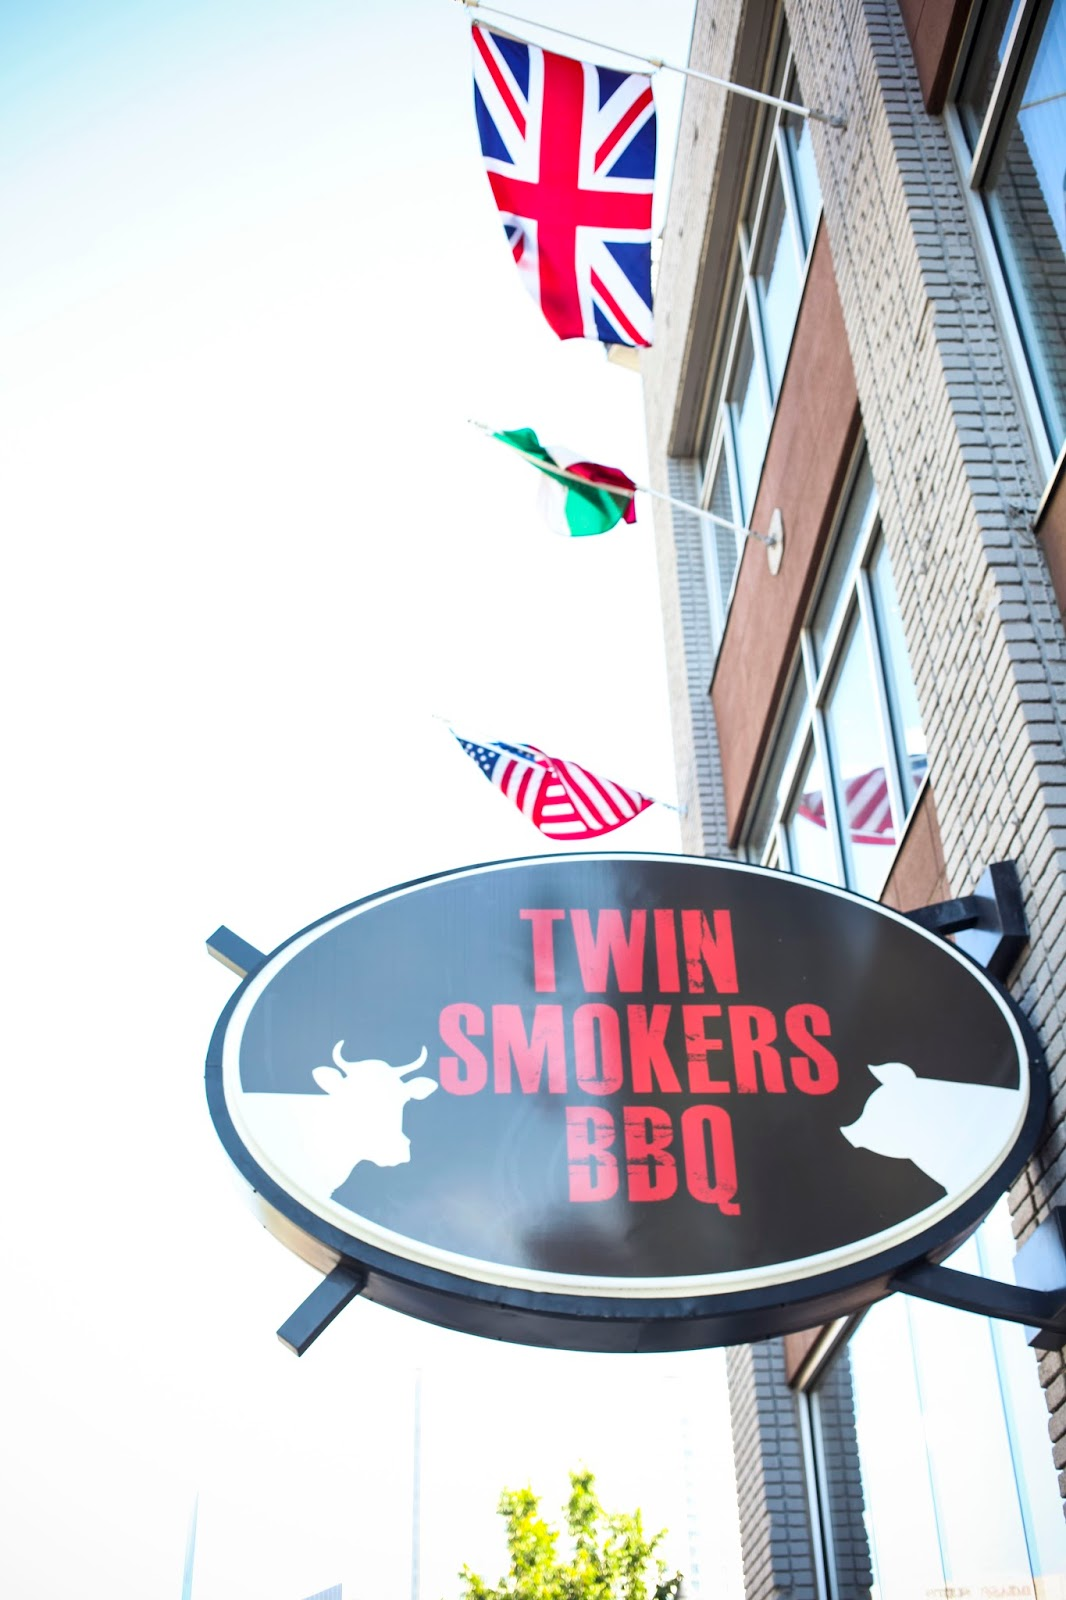 Exterior sign of Twin Smokers BBQ